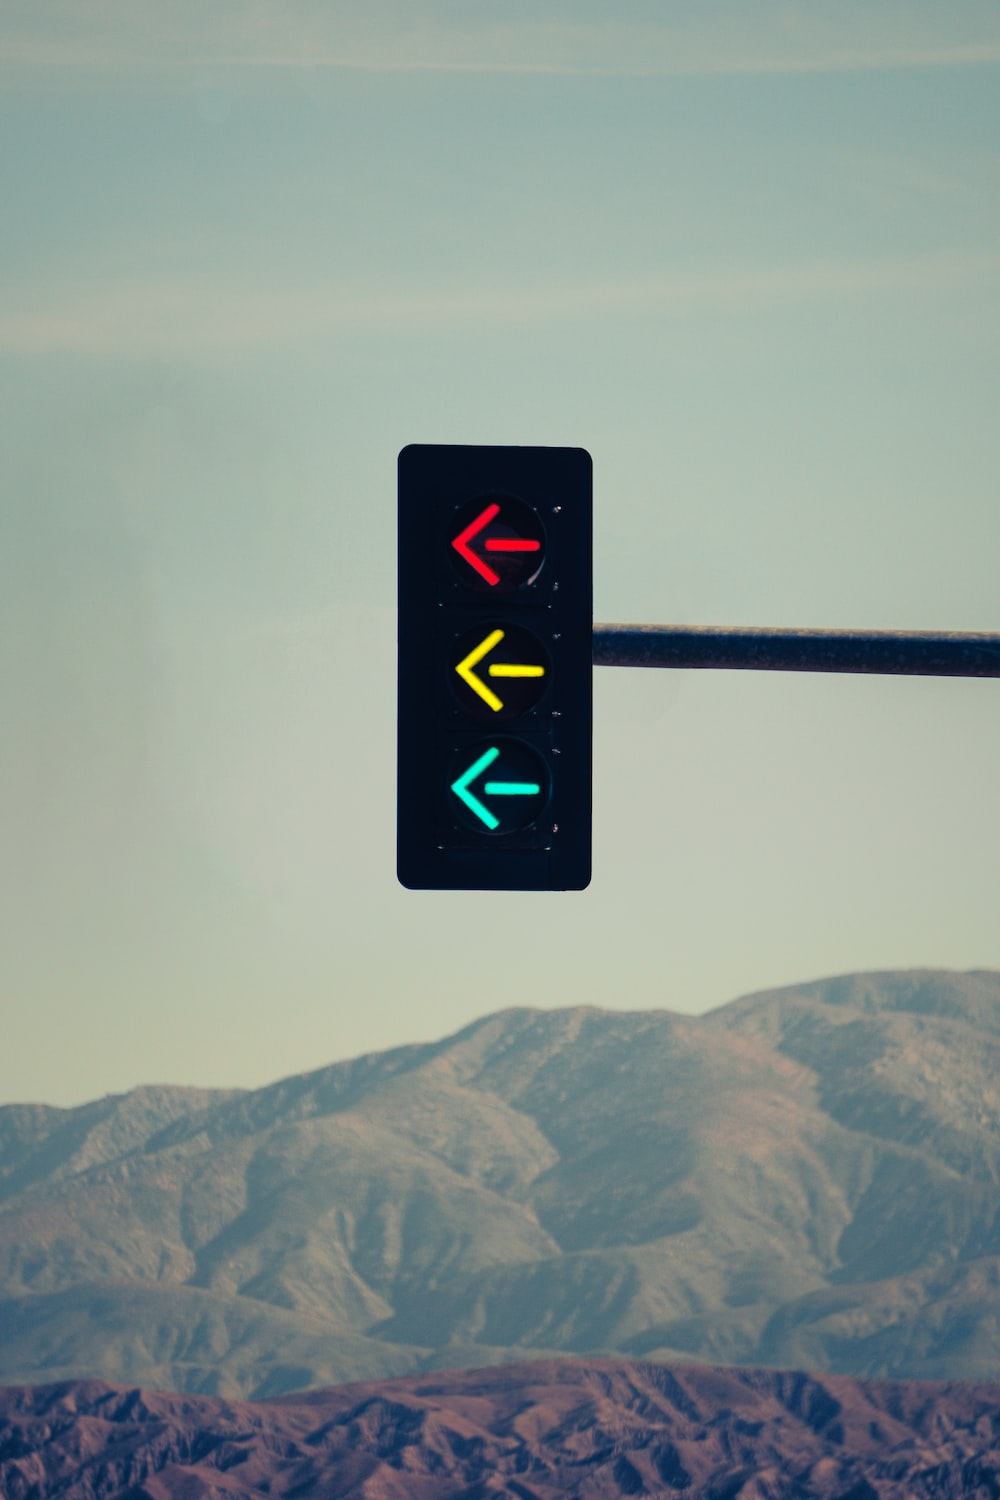 black and red traffic light